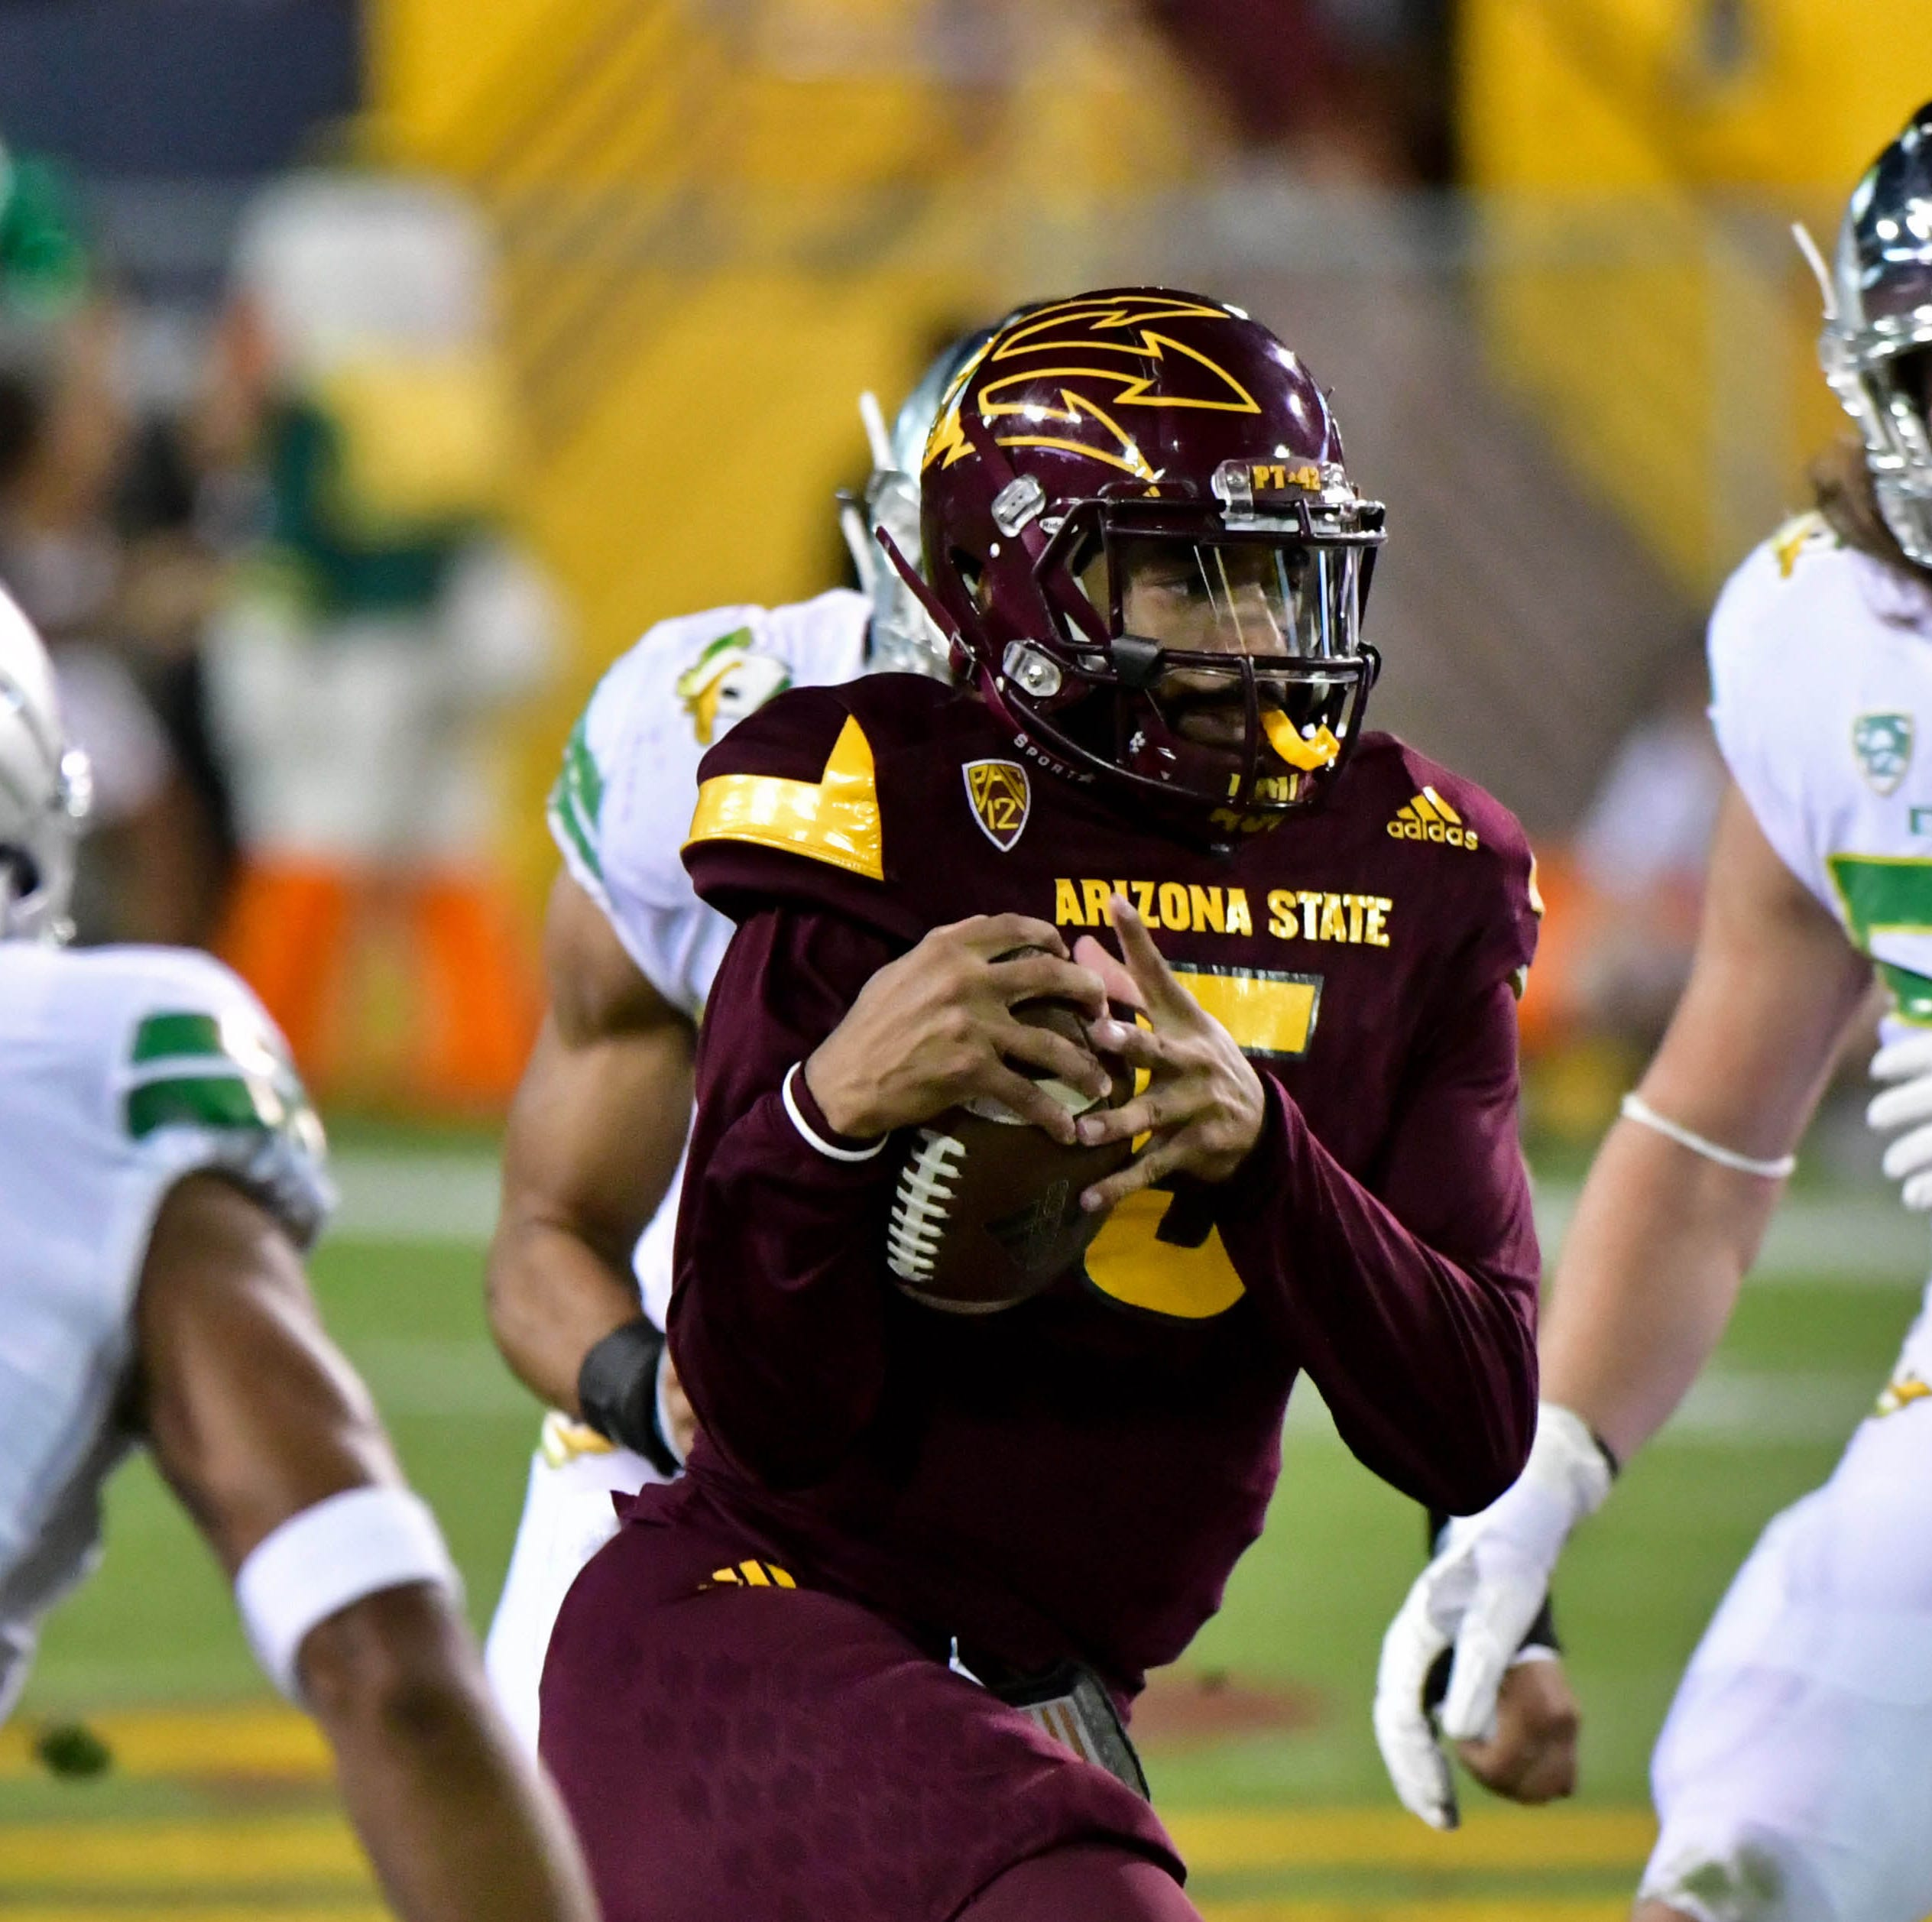 ASU vs. Oregon picks, predictions: Who wins Week 12 Pac-12 college football game?